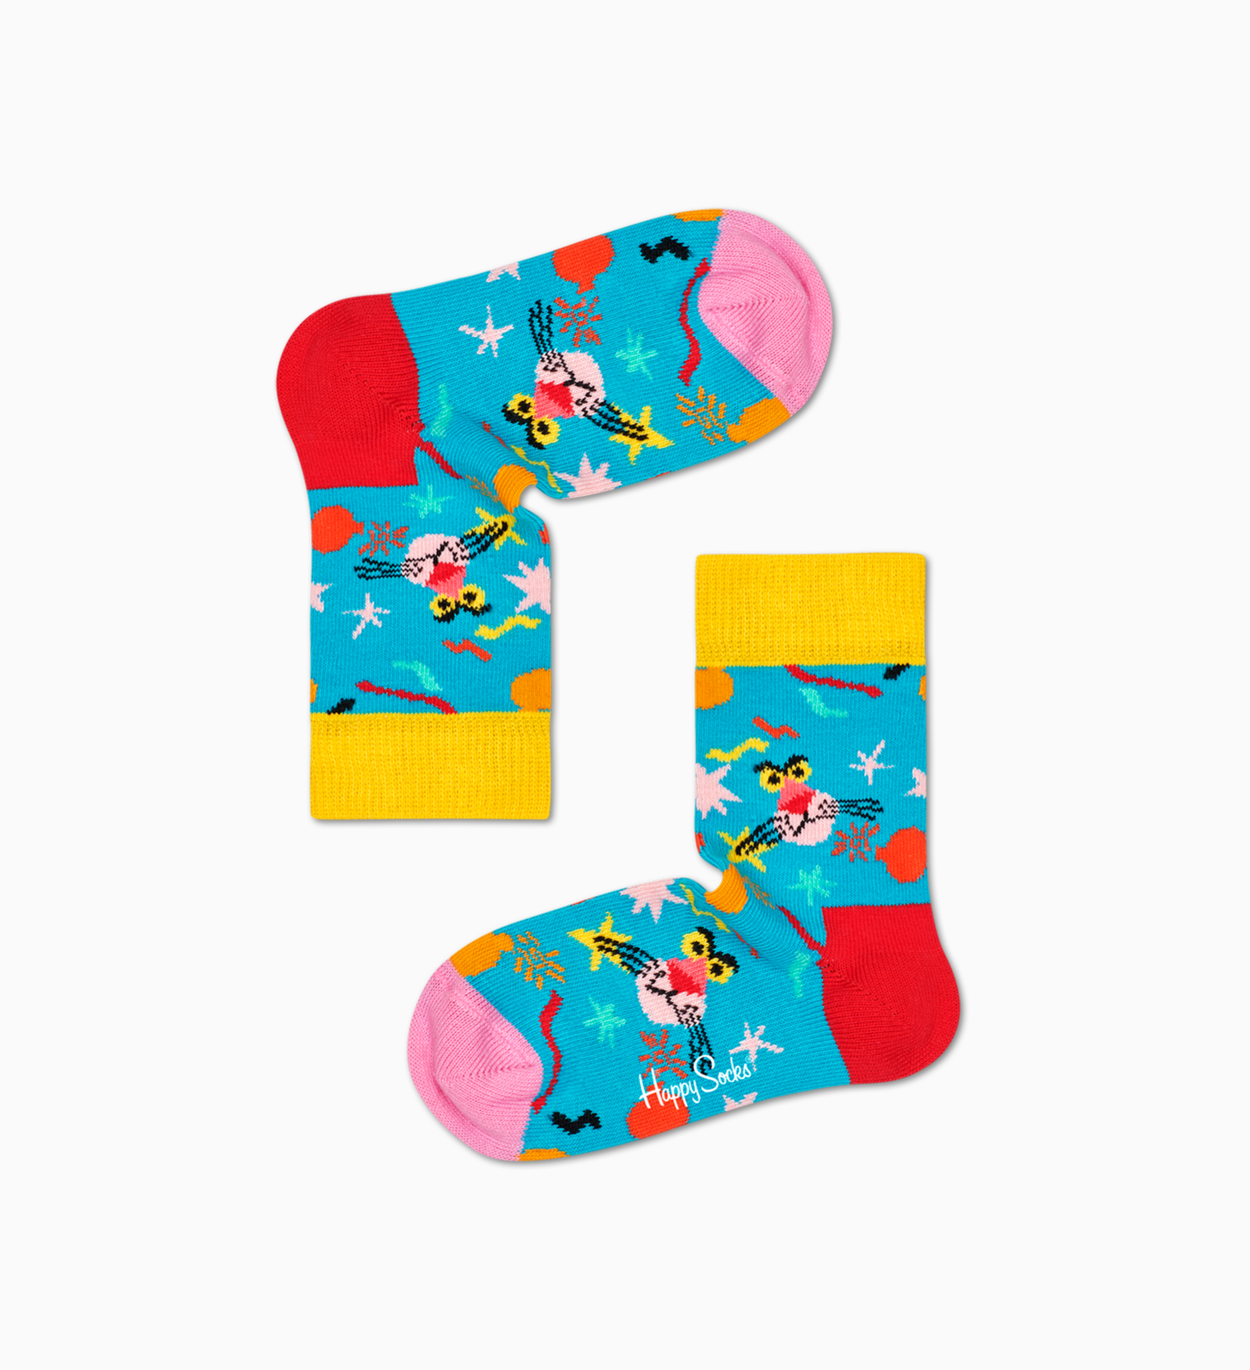 Happy Socks x Pink Panther:  Kids Sock Box Set